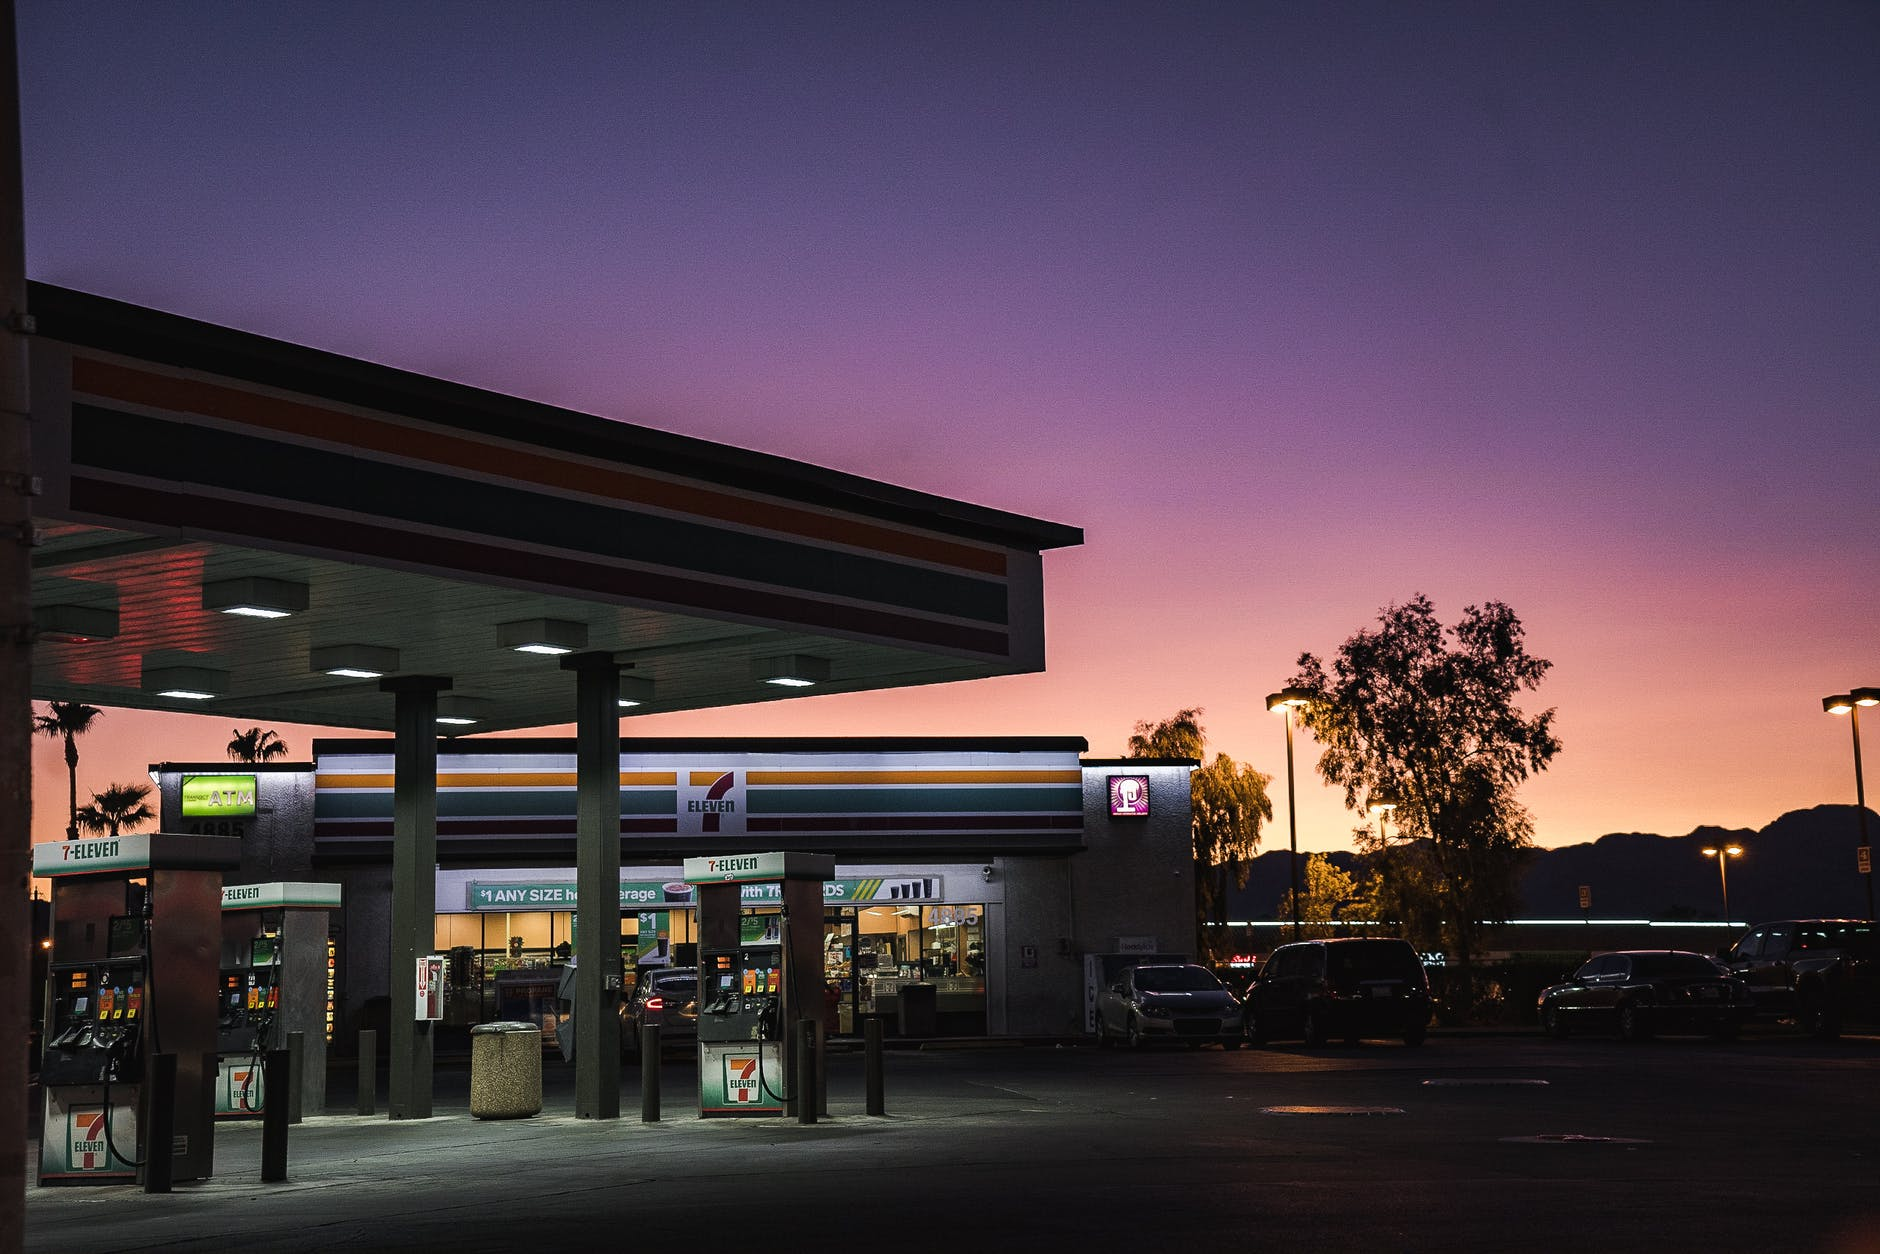 Editor's Note: Gas taxes sound like an easy fix, but government will have to work harder than that